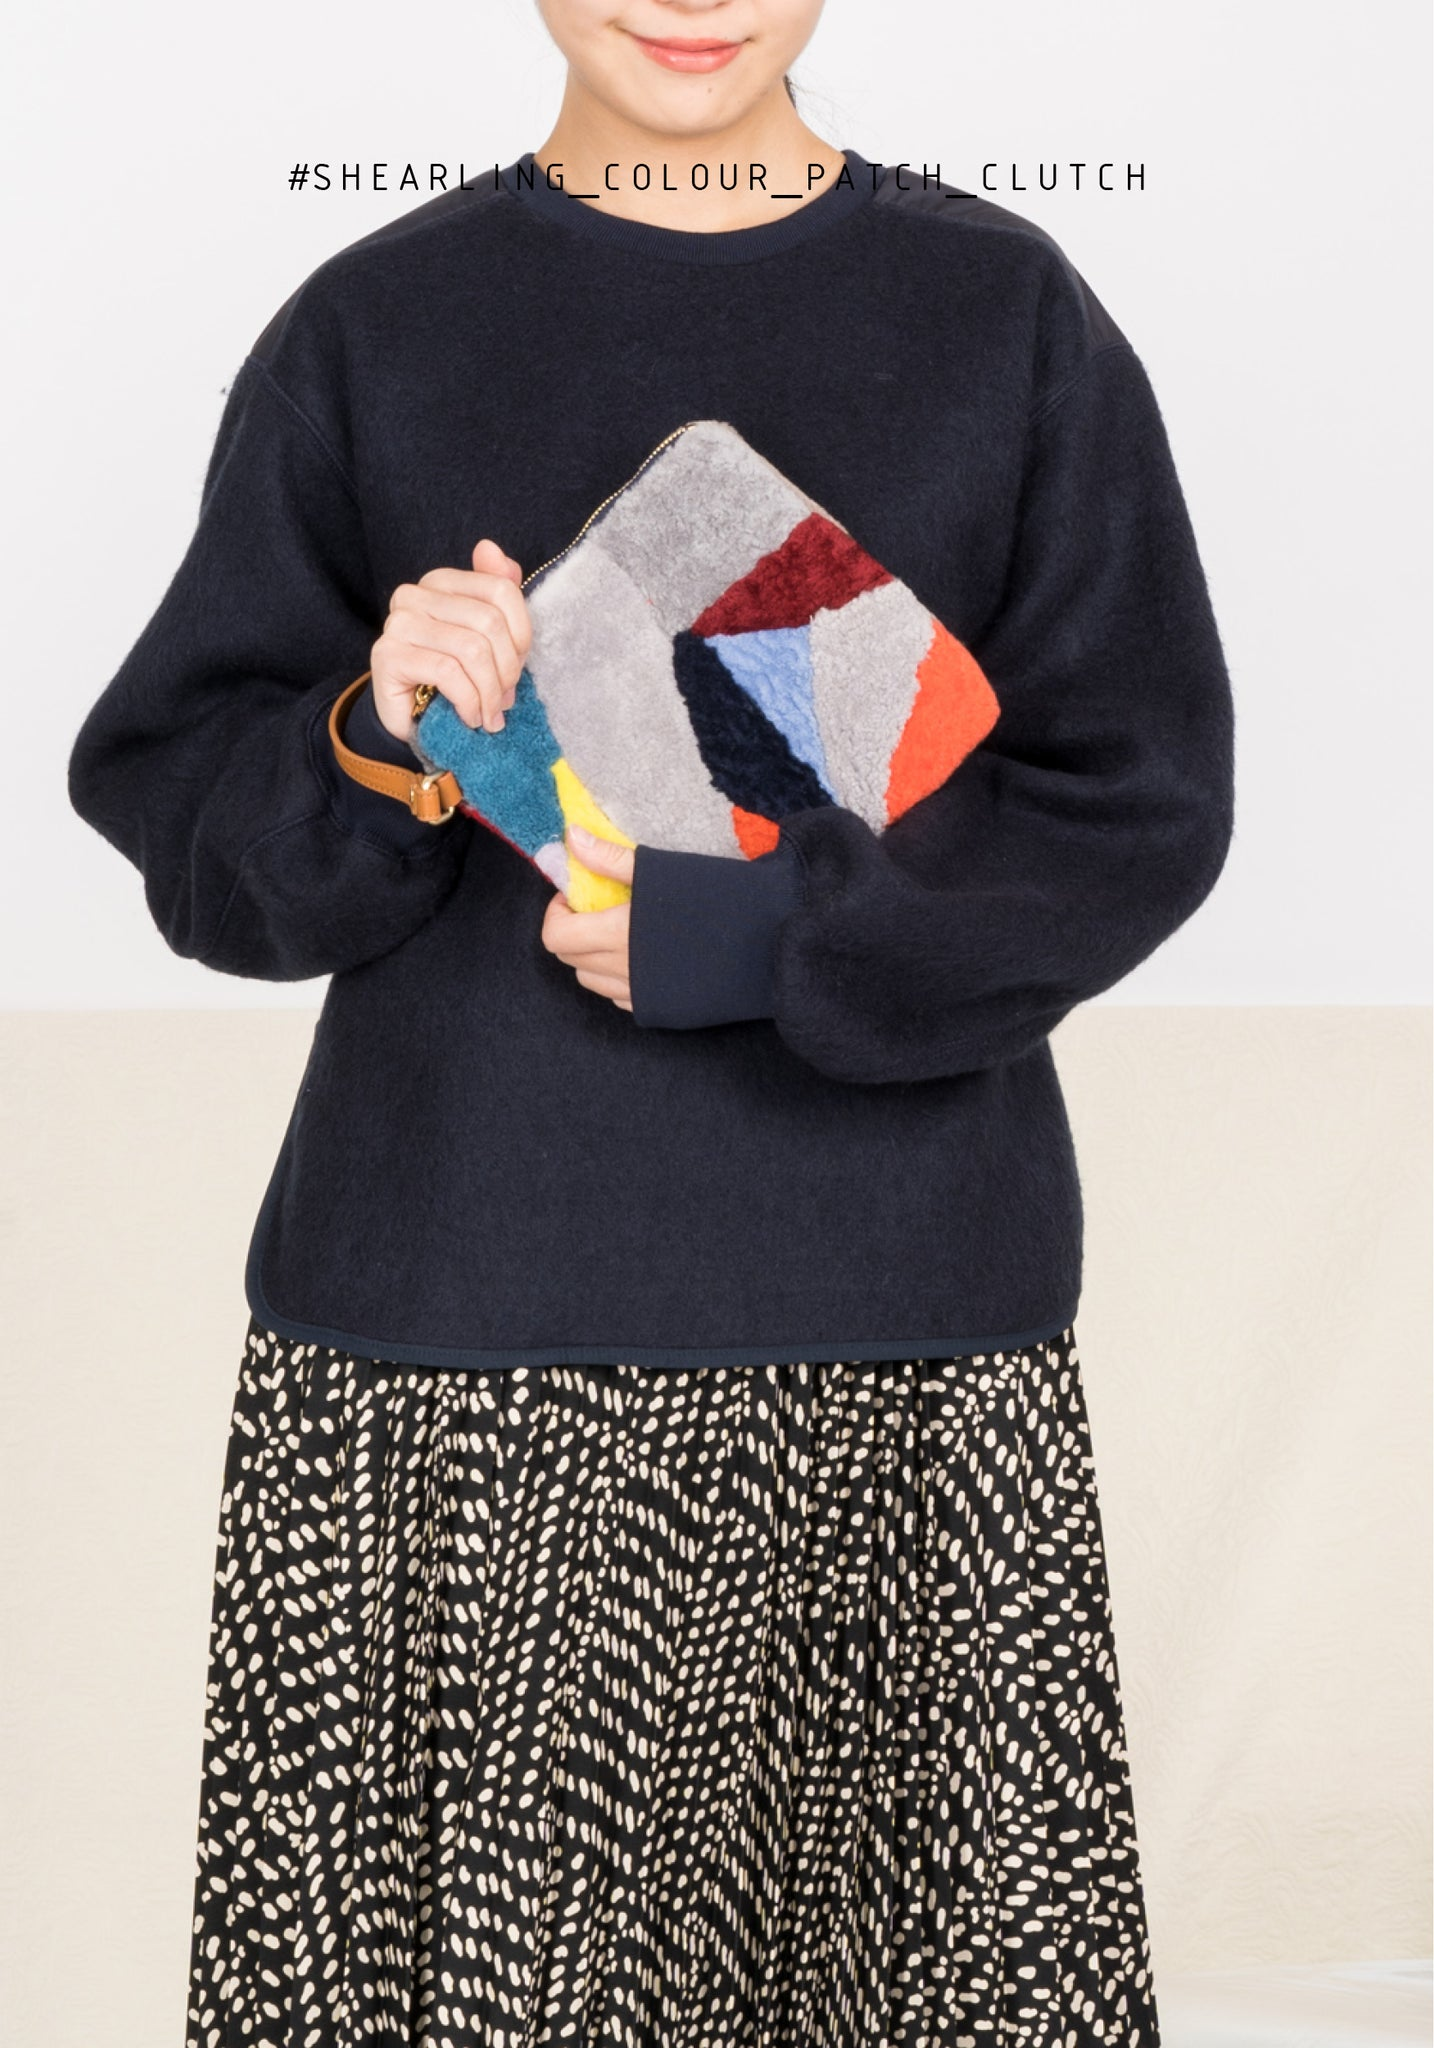 Shearling Colour Patch Clutch